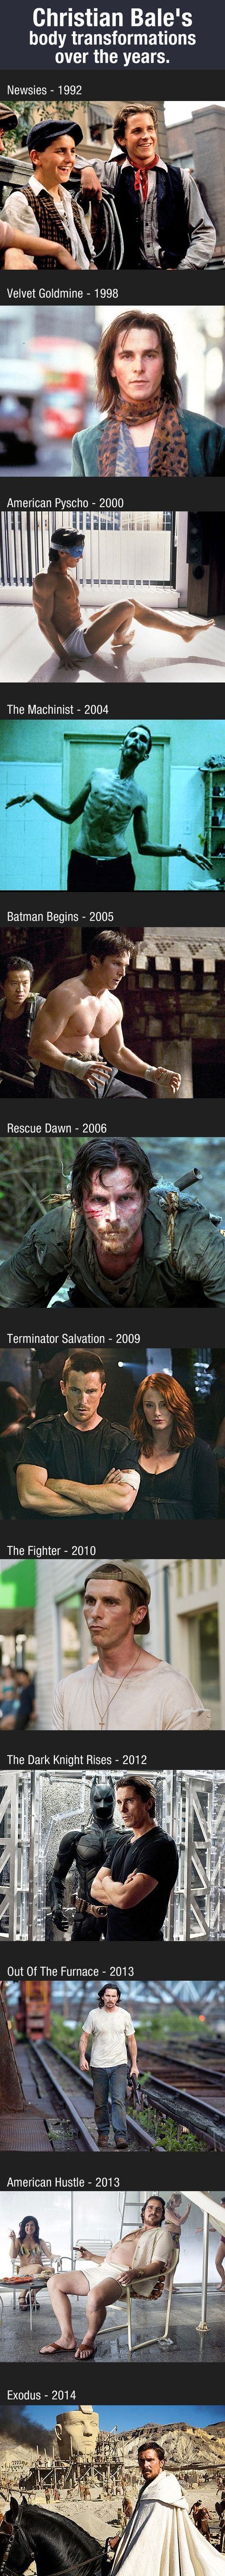 Christian Bale's body transformations over the years